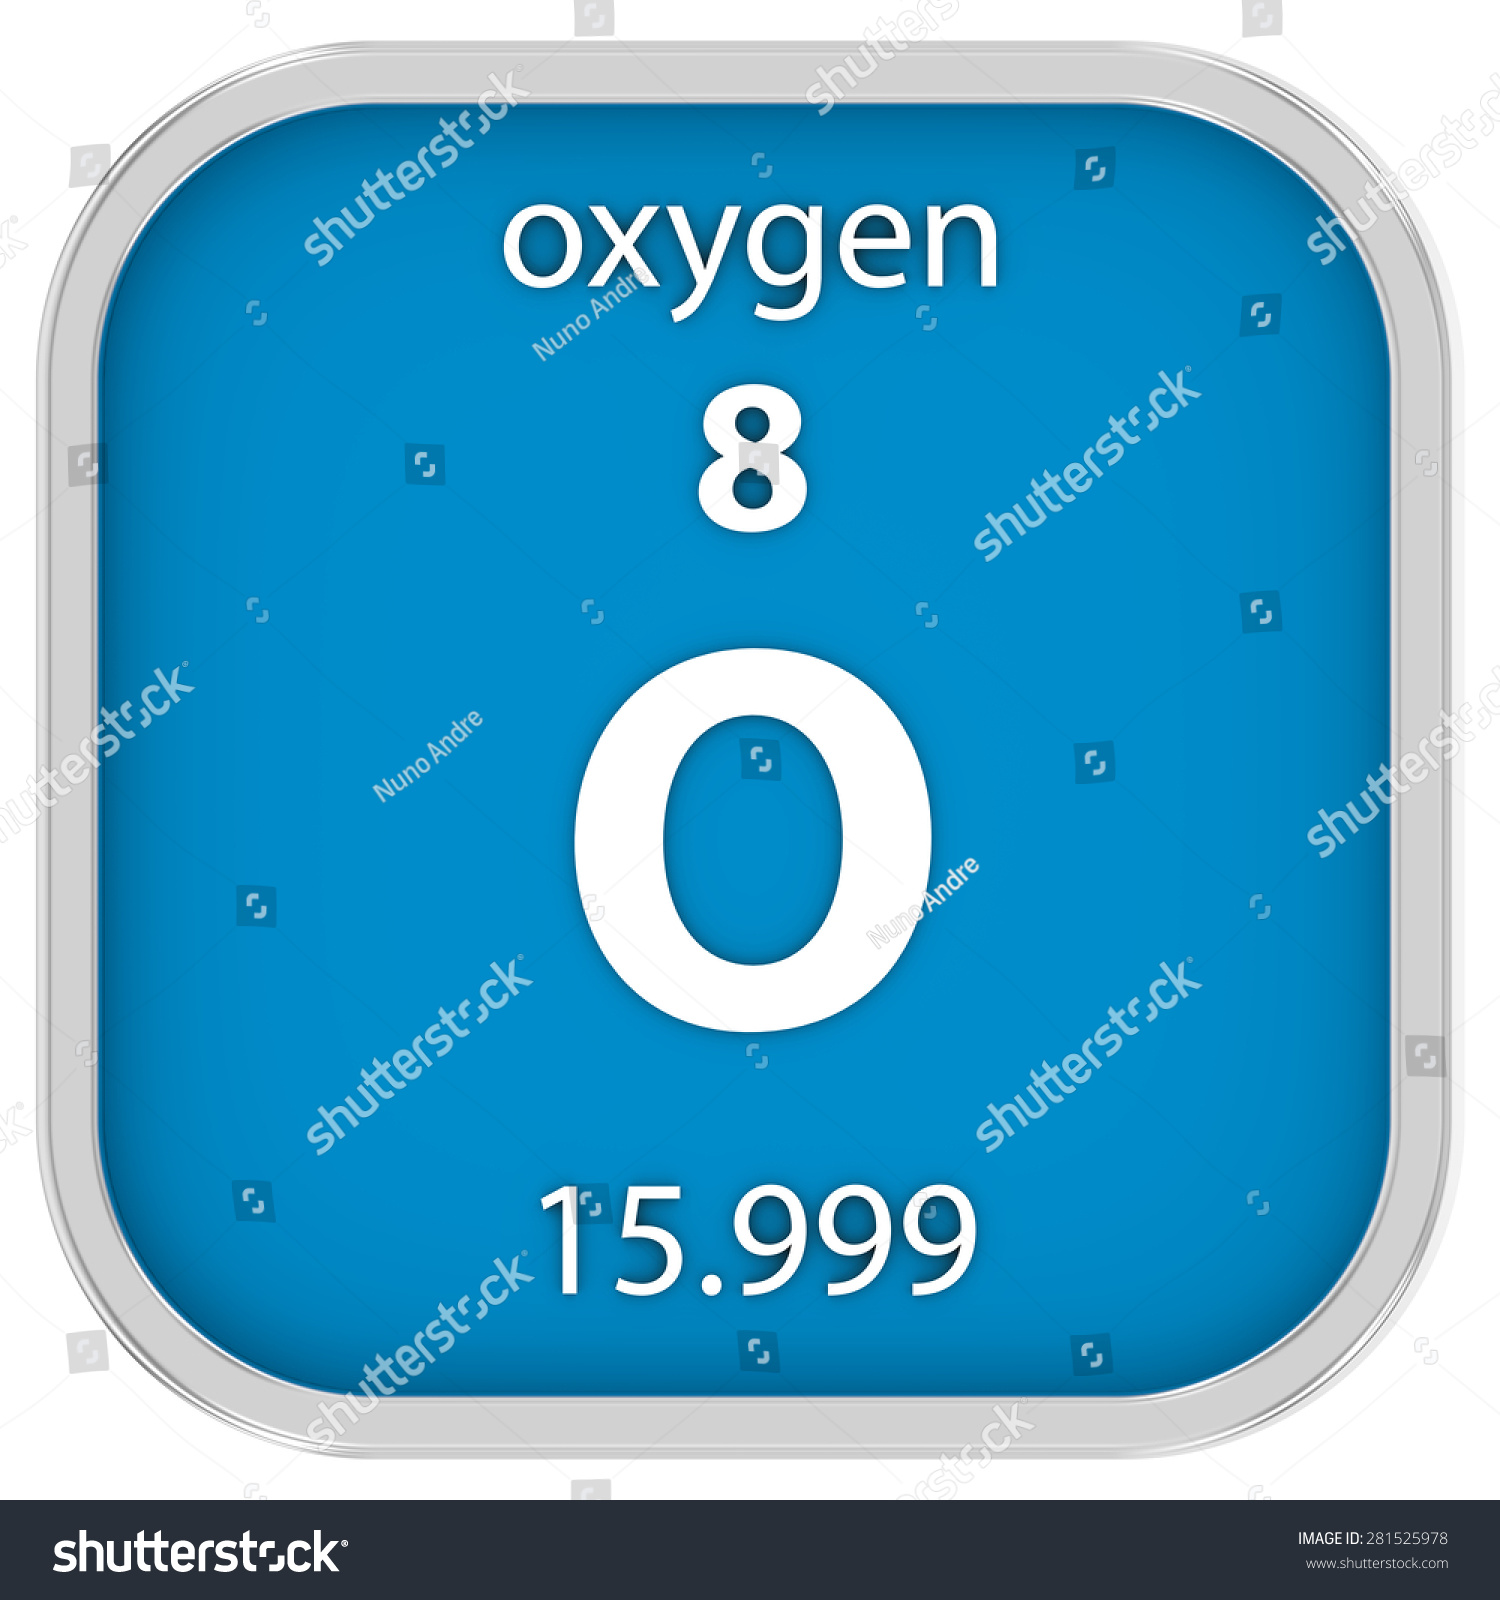 Oxygen on periodic table image collections periodic table images oxygen periodic table image collections periodic table images the periodic table oxygen choice image periodic table gamestrikefo Images